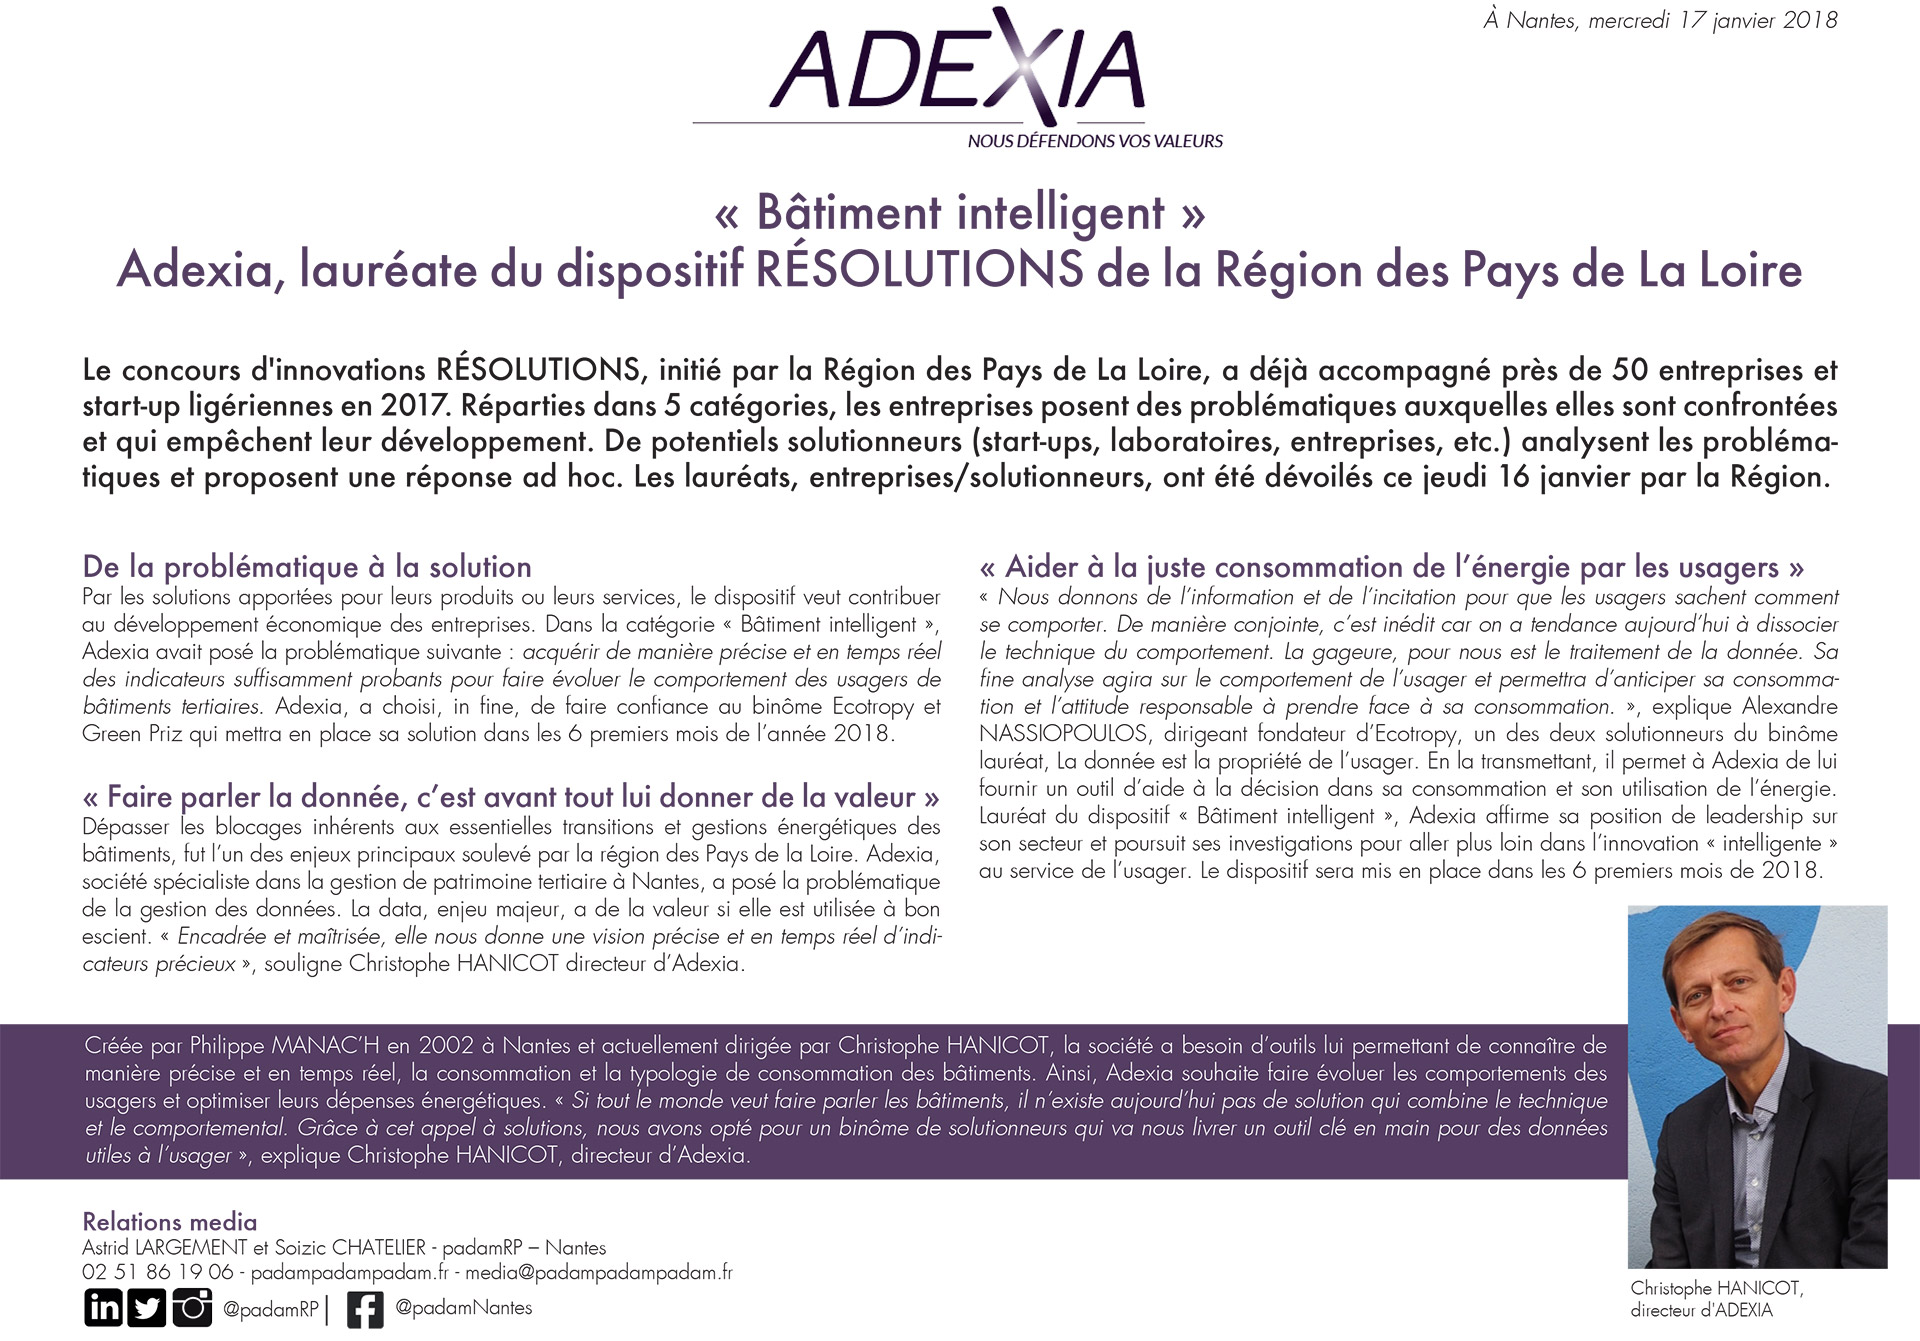 adexia resolutions pays de la loire